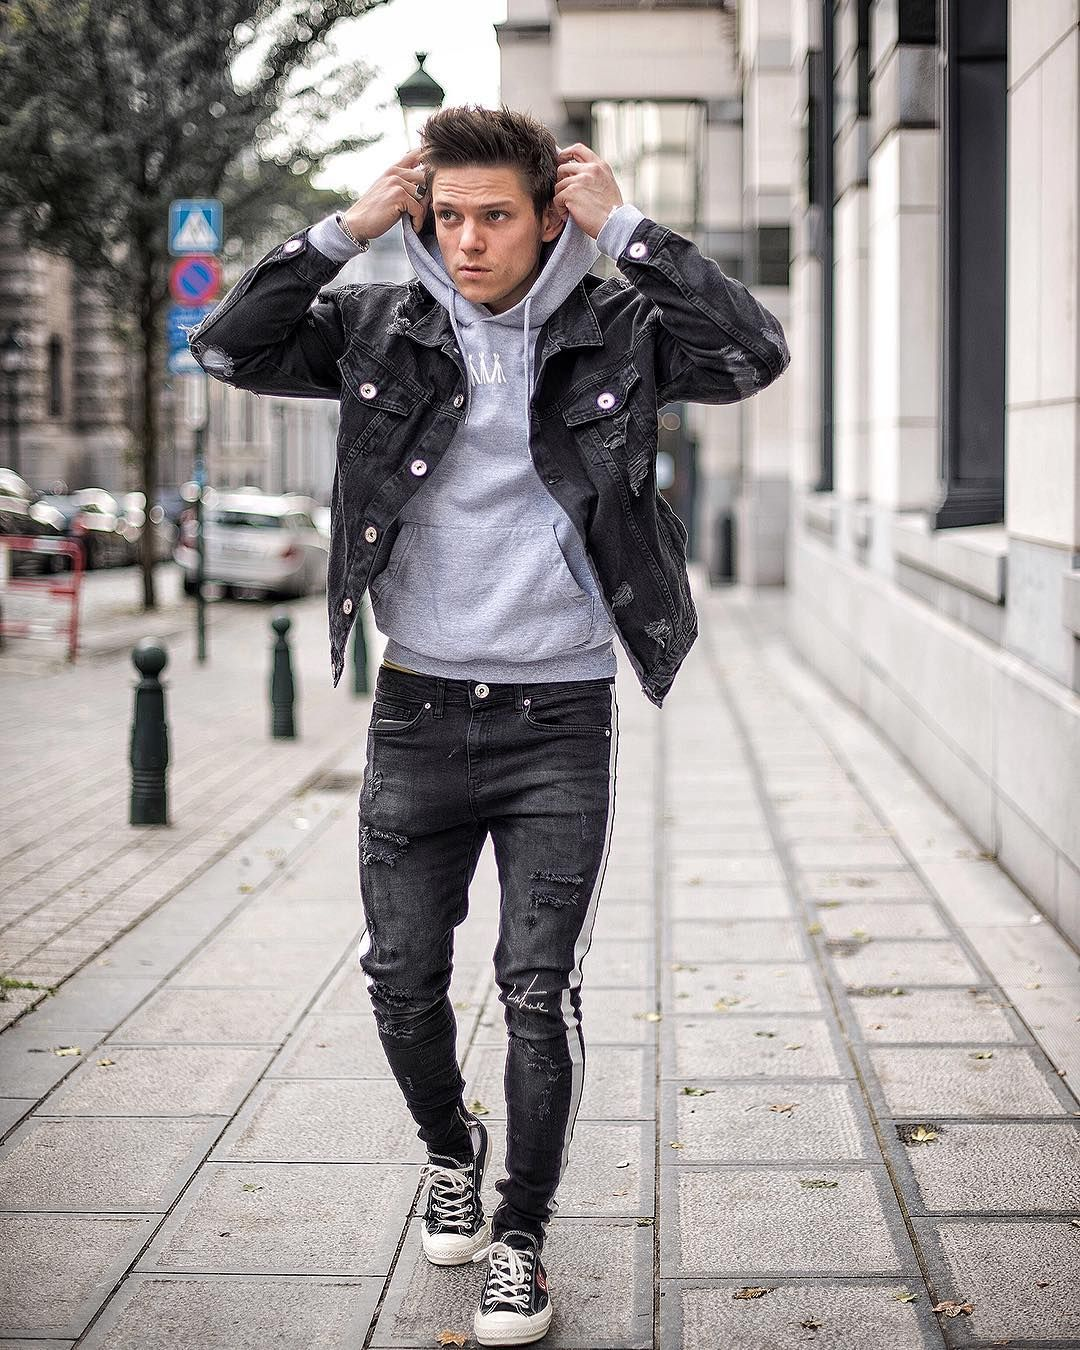 Loic Van Lang On Instagram It S Only Cold If You Re Standing Still Ripped Jeans Jacket Fro Stylish Mens Outfits Mens Fashion Jeans Jeans Outfit Men [ 1350 x 1080 Pixel ]